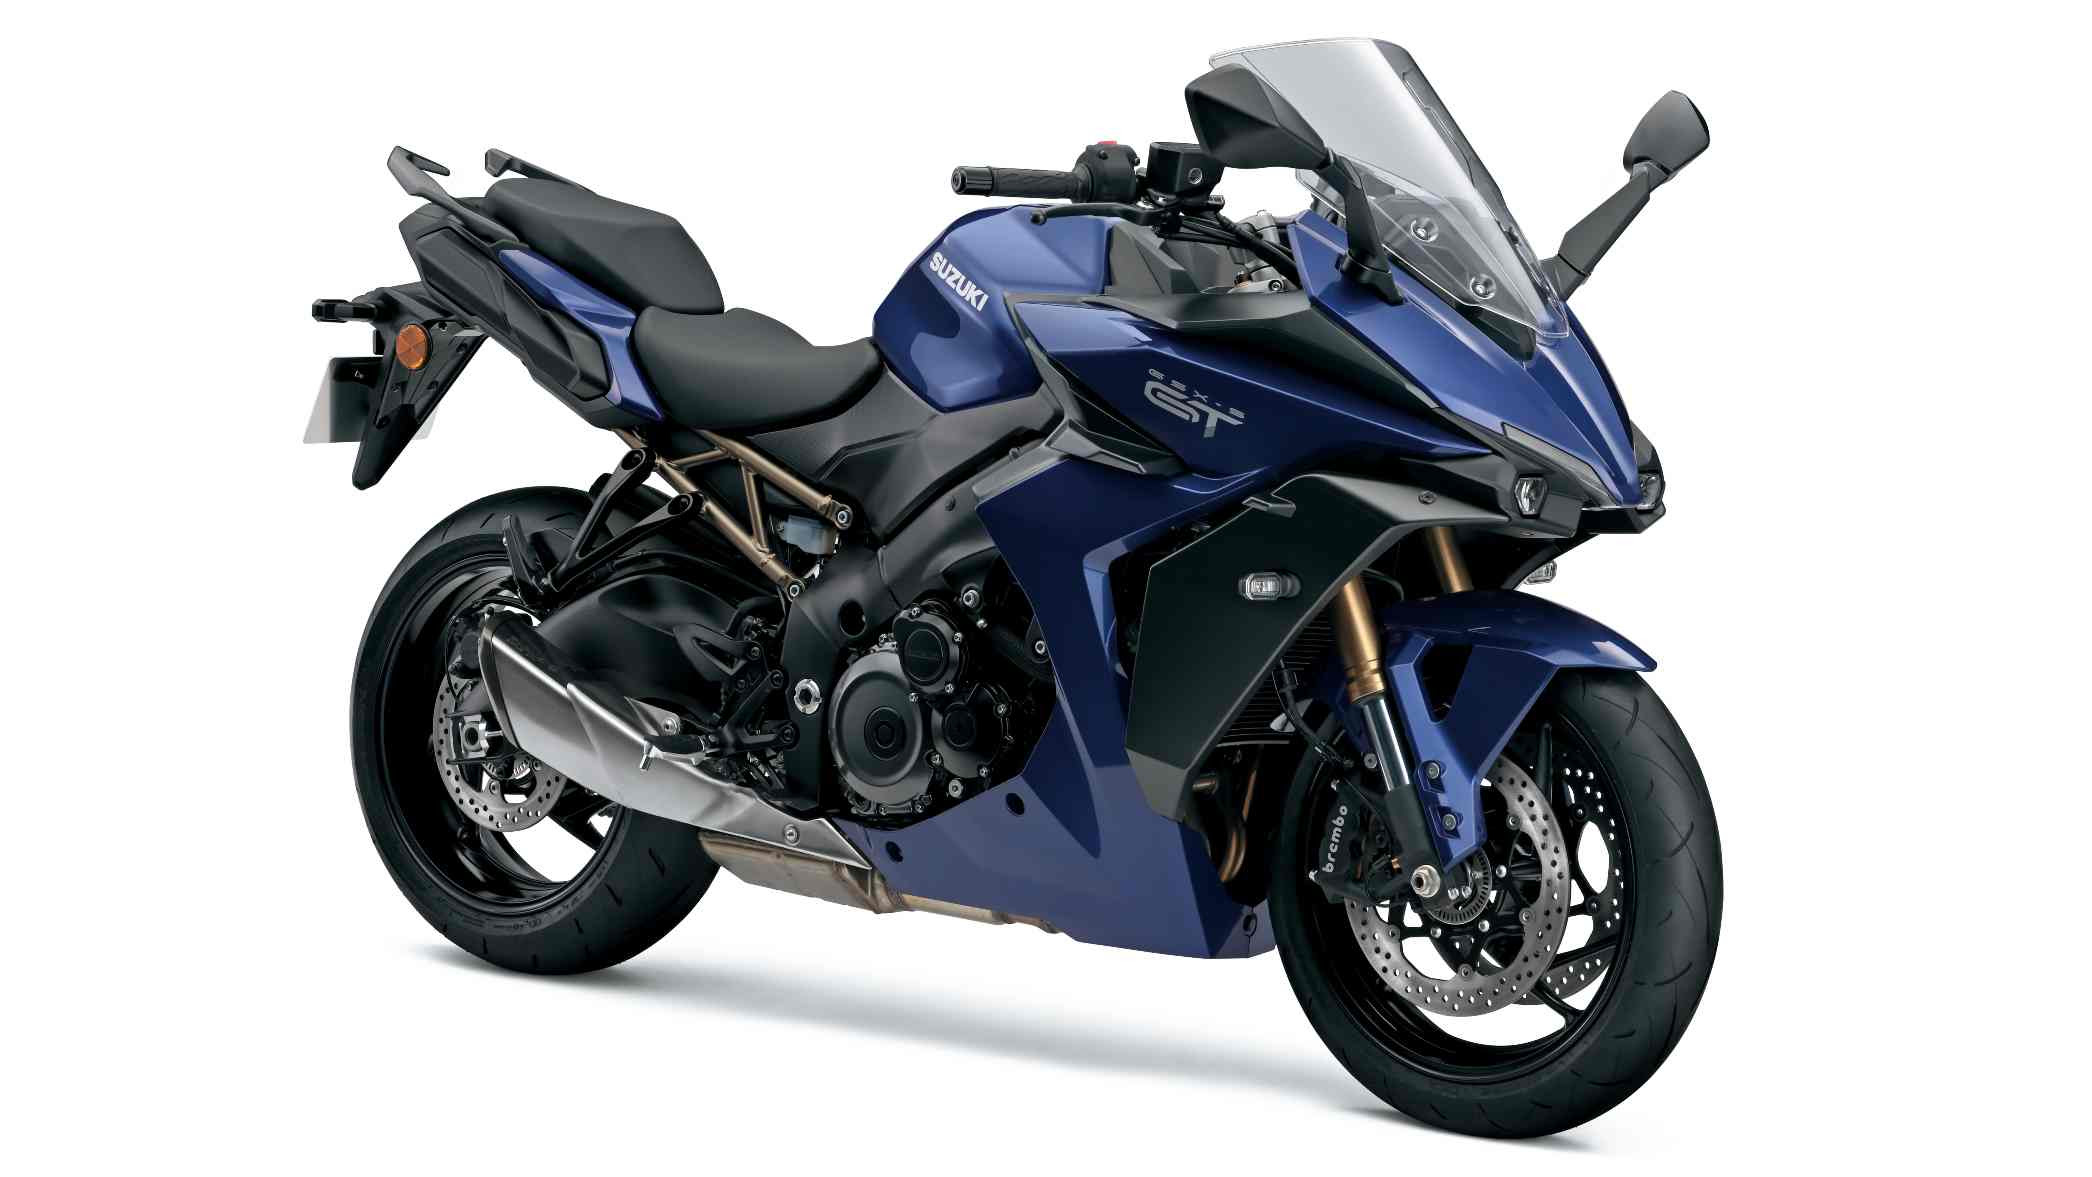 Powering the Suzuki is a 999 cc in-line four-cylinder engine that puts out 150 hp and 106 Nm. Image: Suzuki